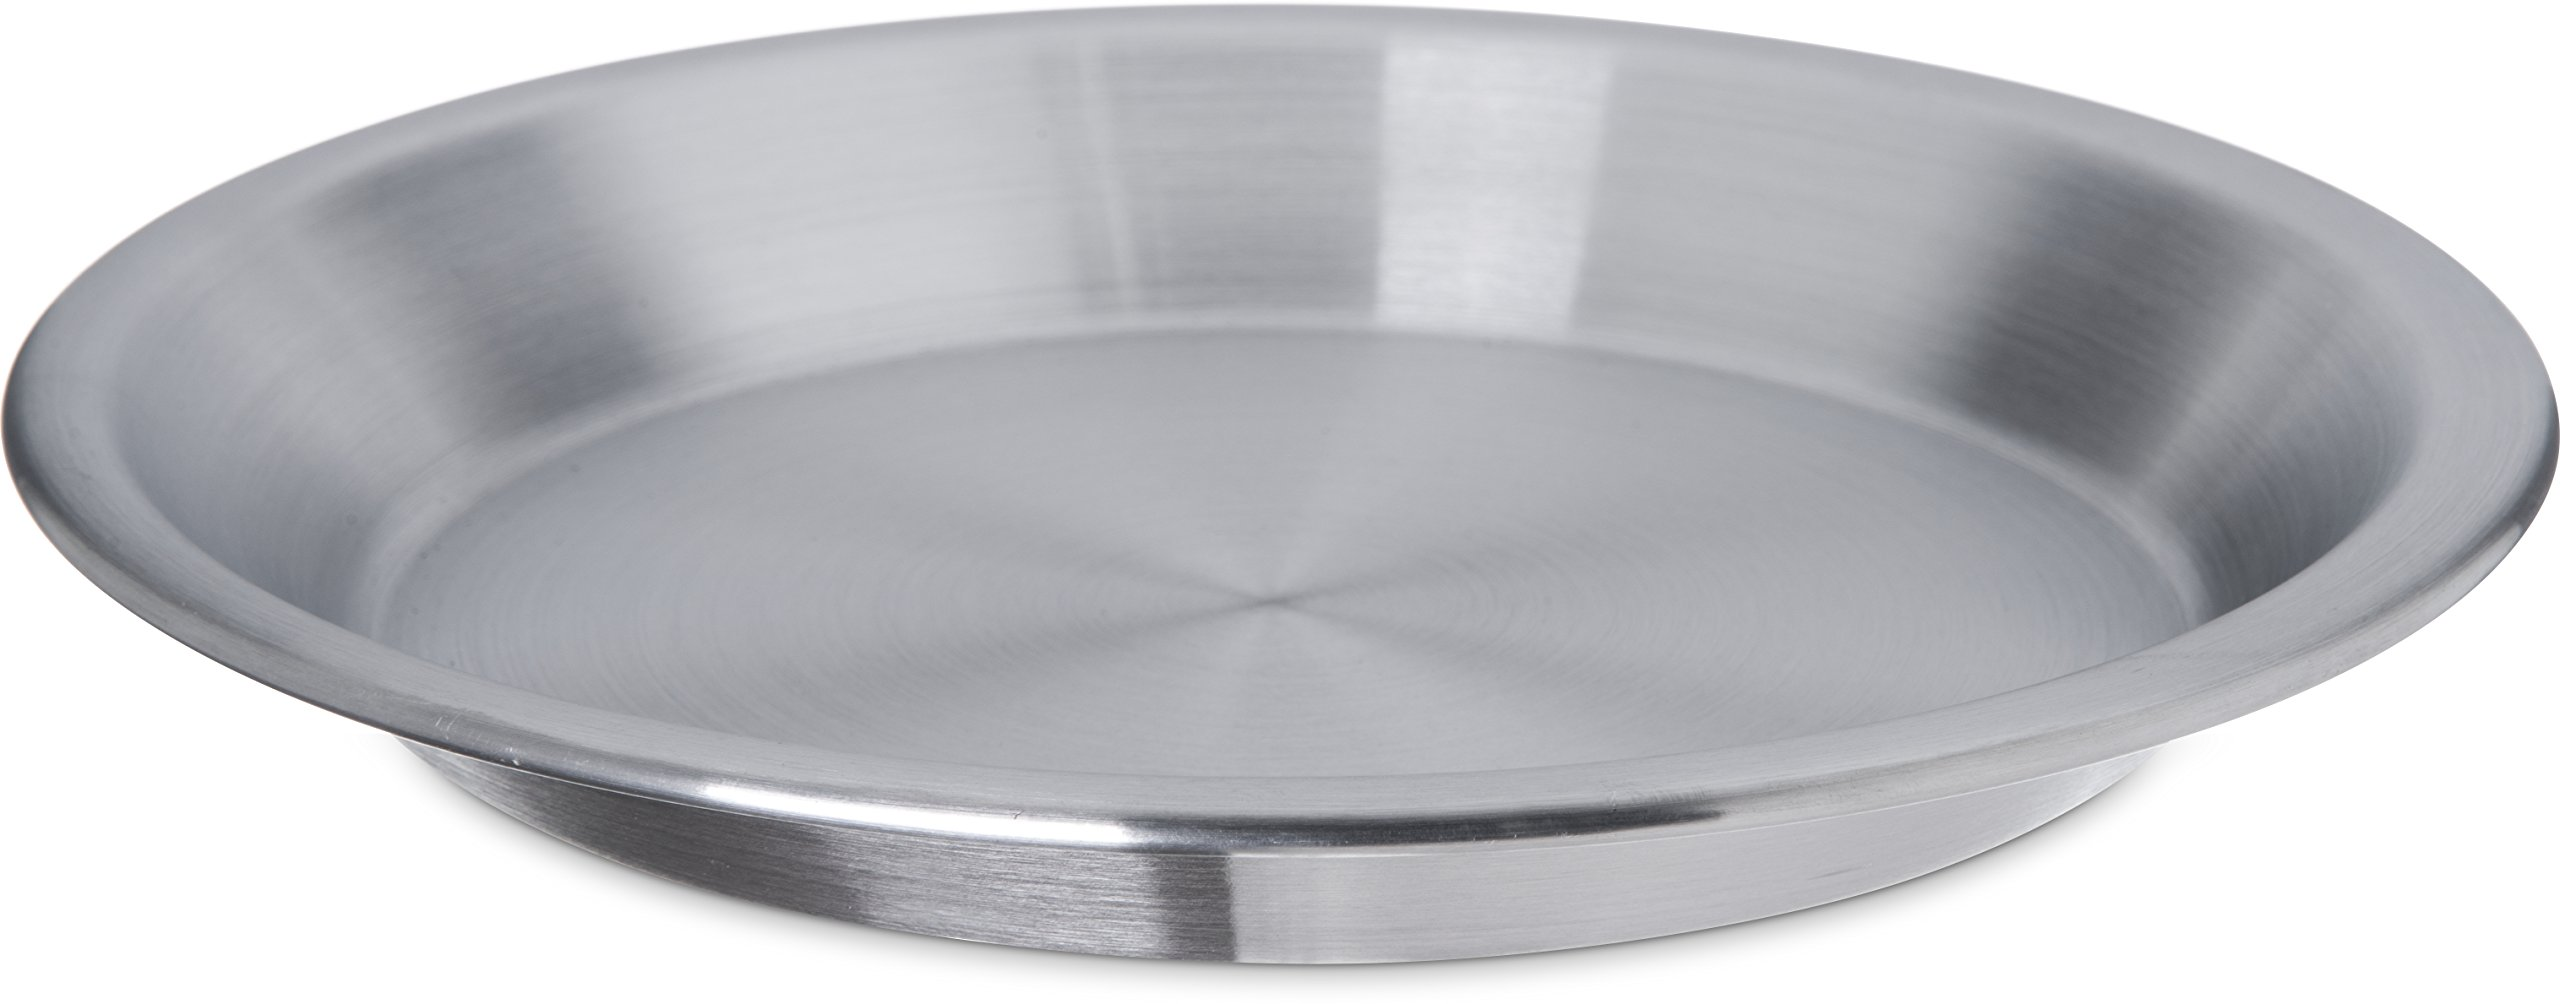 Carlisle 60322 Pie Pan, 9'', Aluminum (Pack of 24) by Carlisle (Image #1)